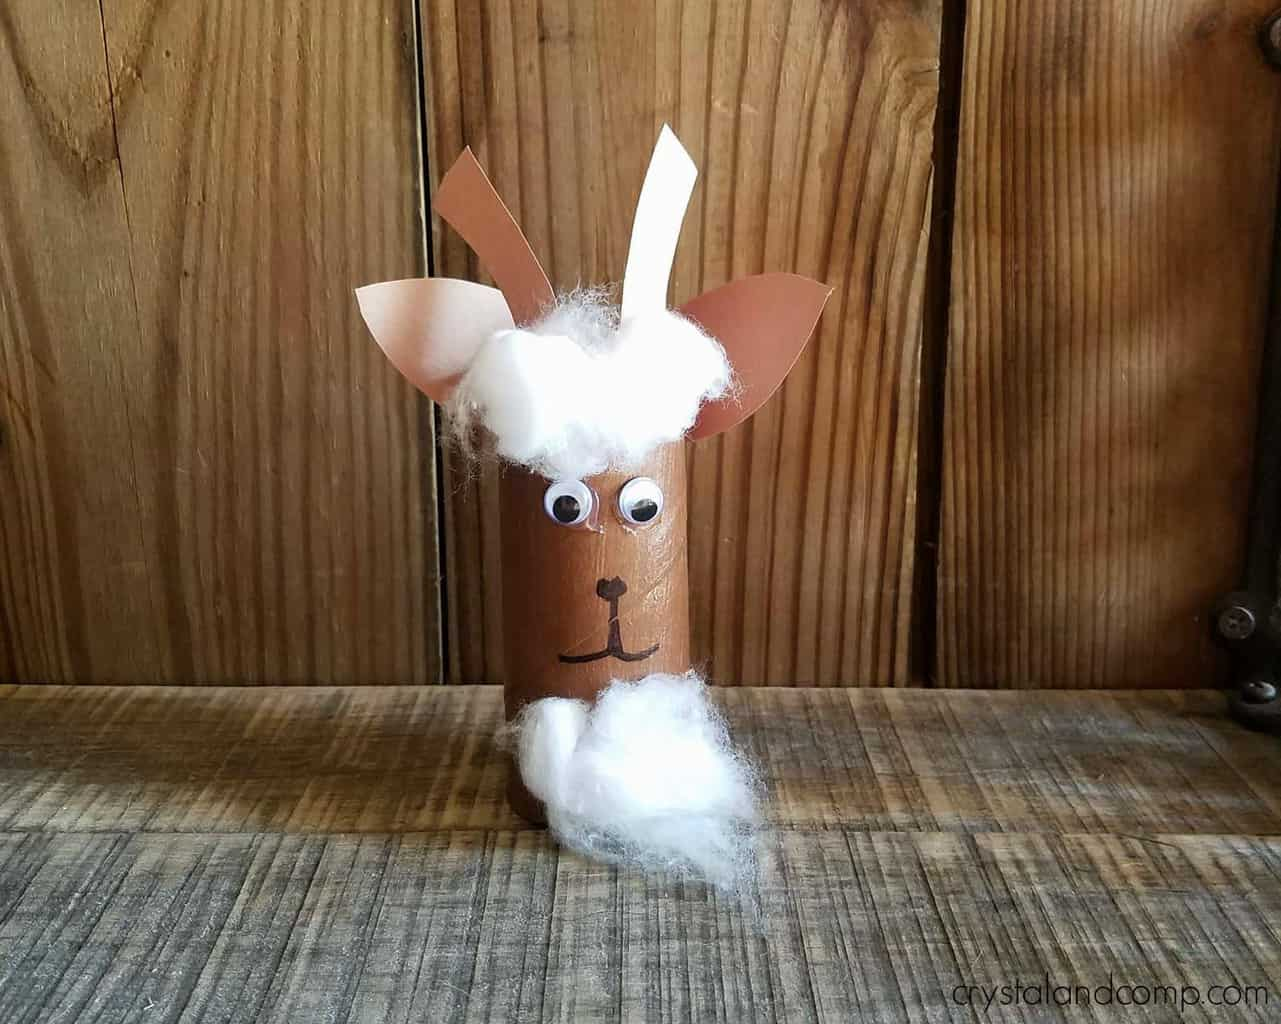 Easy goat craft for kids made out of a toilet paper roll.